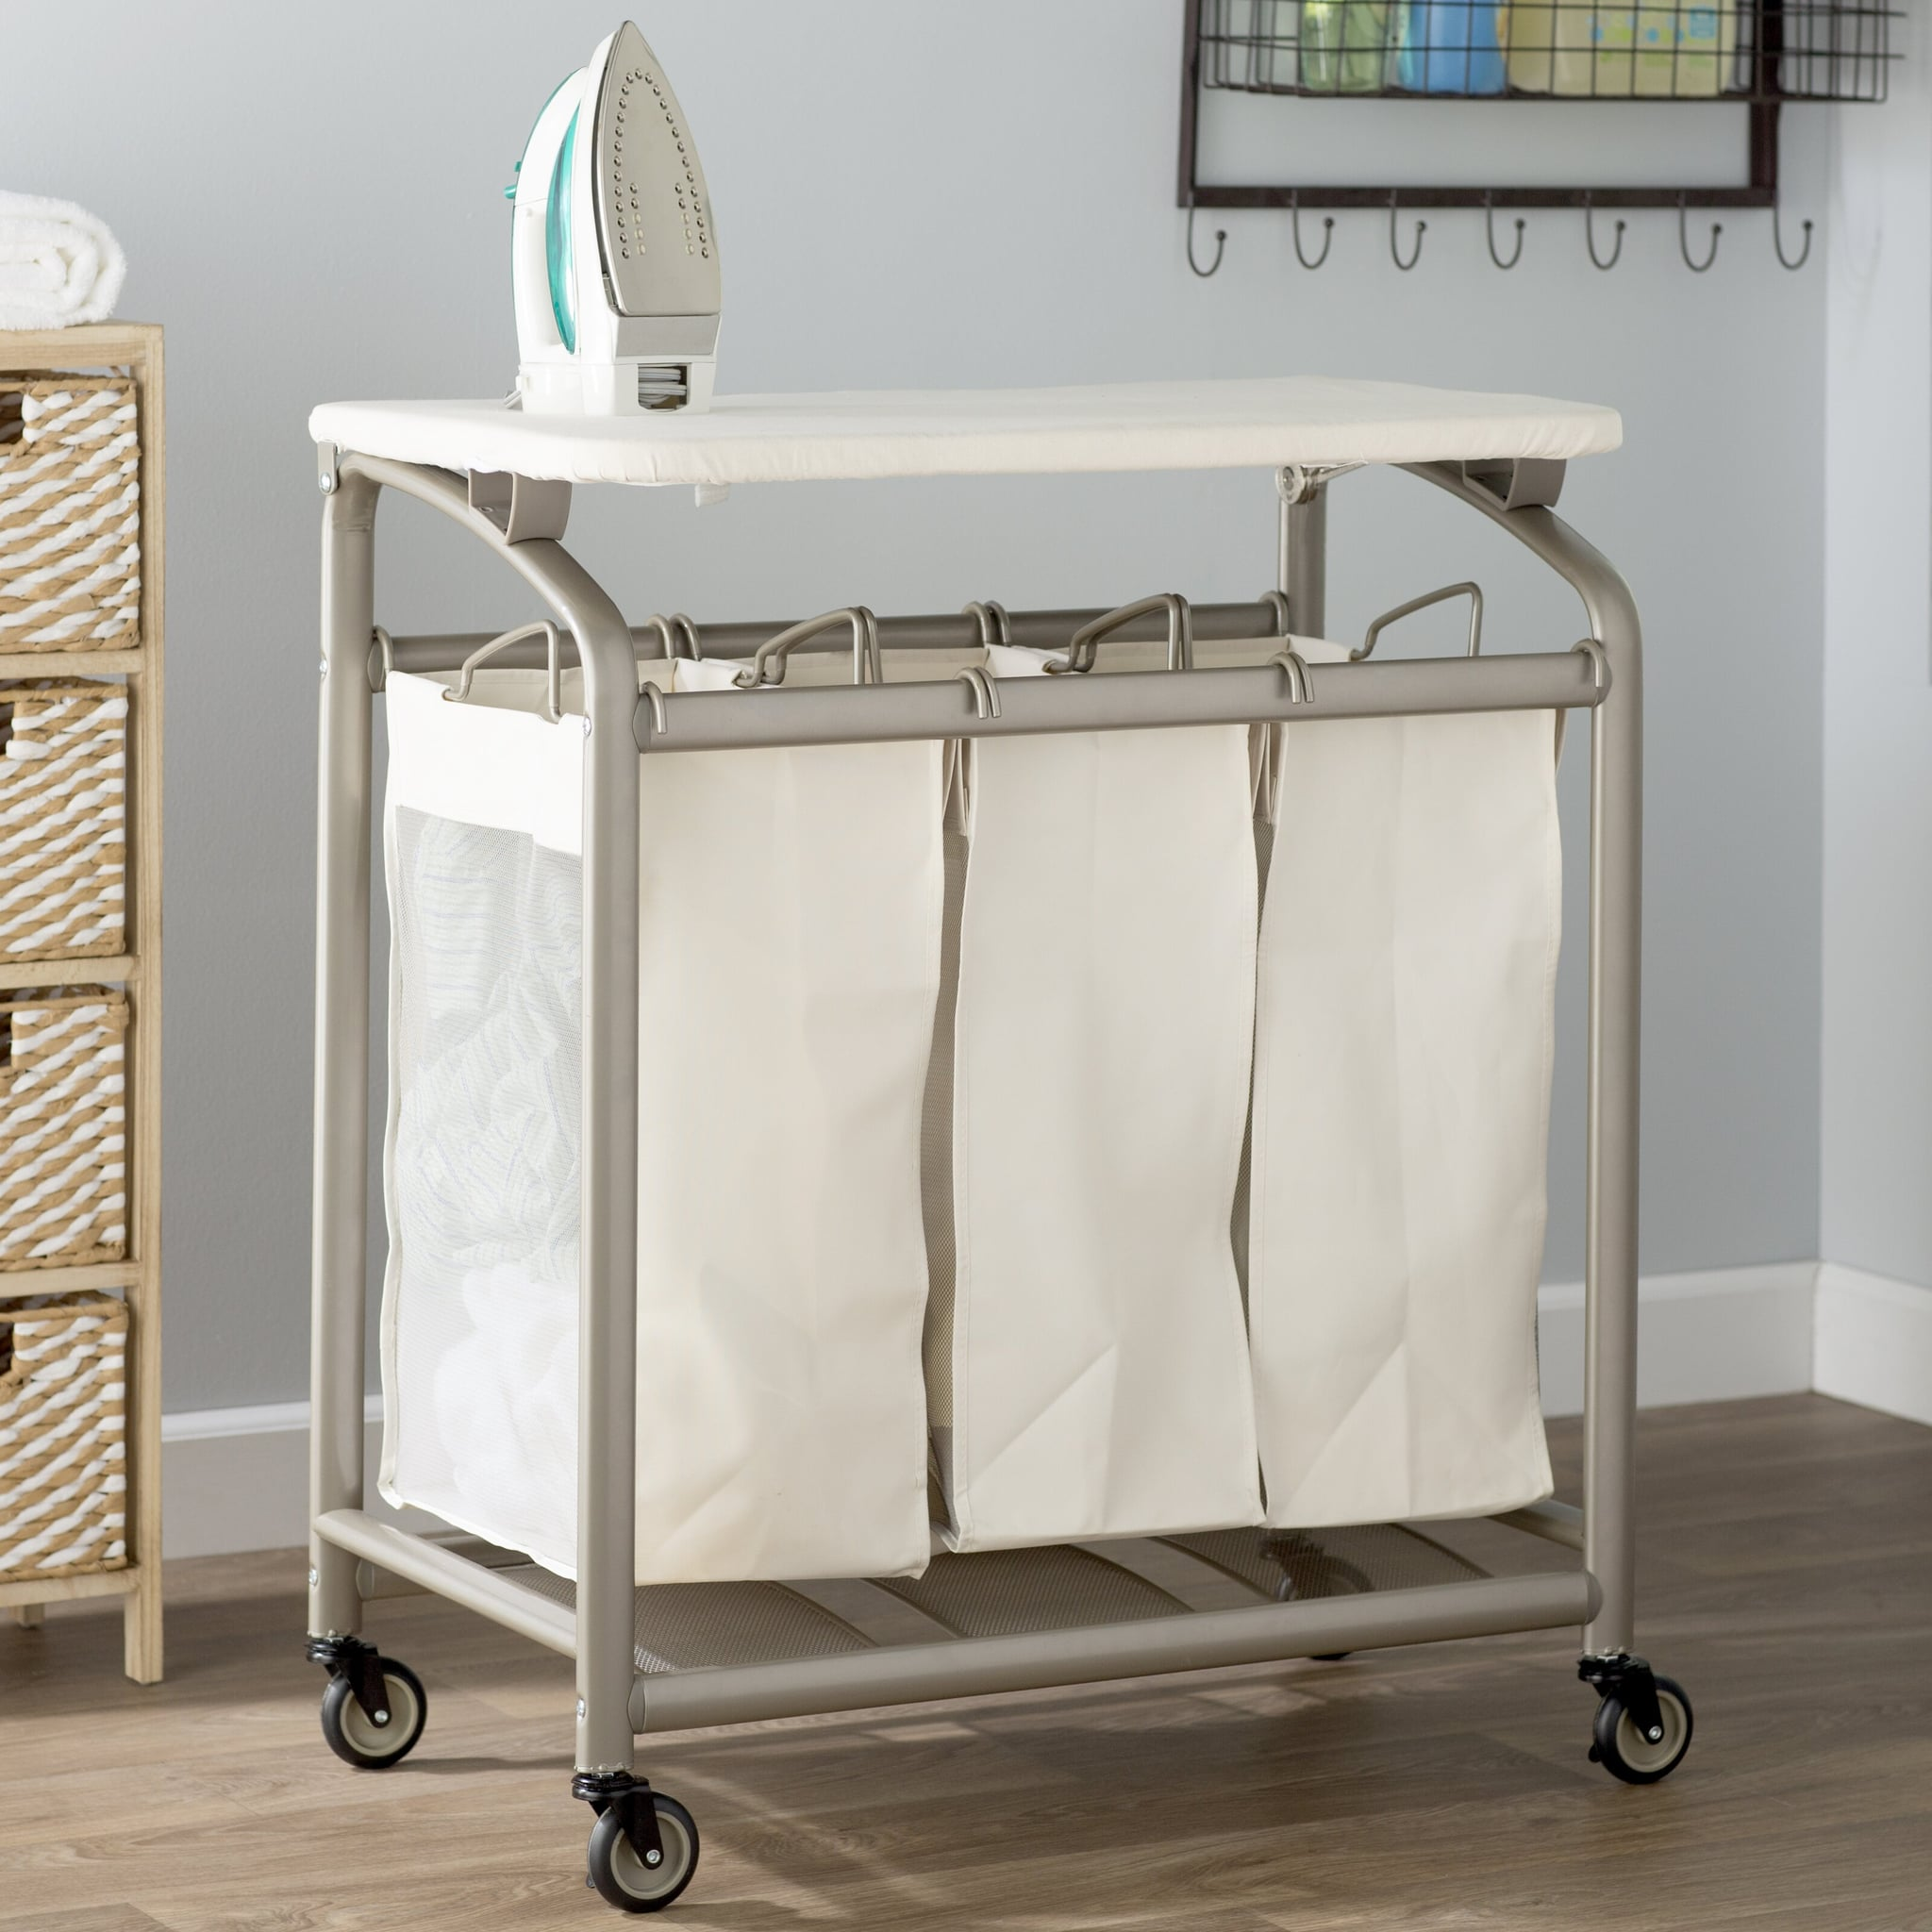 - Laundry Sorter Hamper With Folding Table 15 Genius Laundry-Room